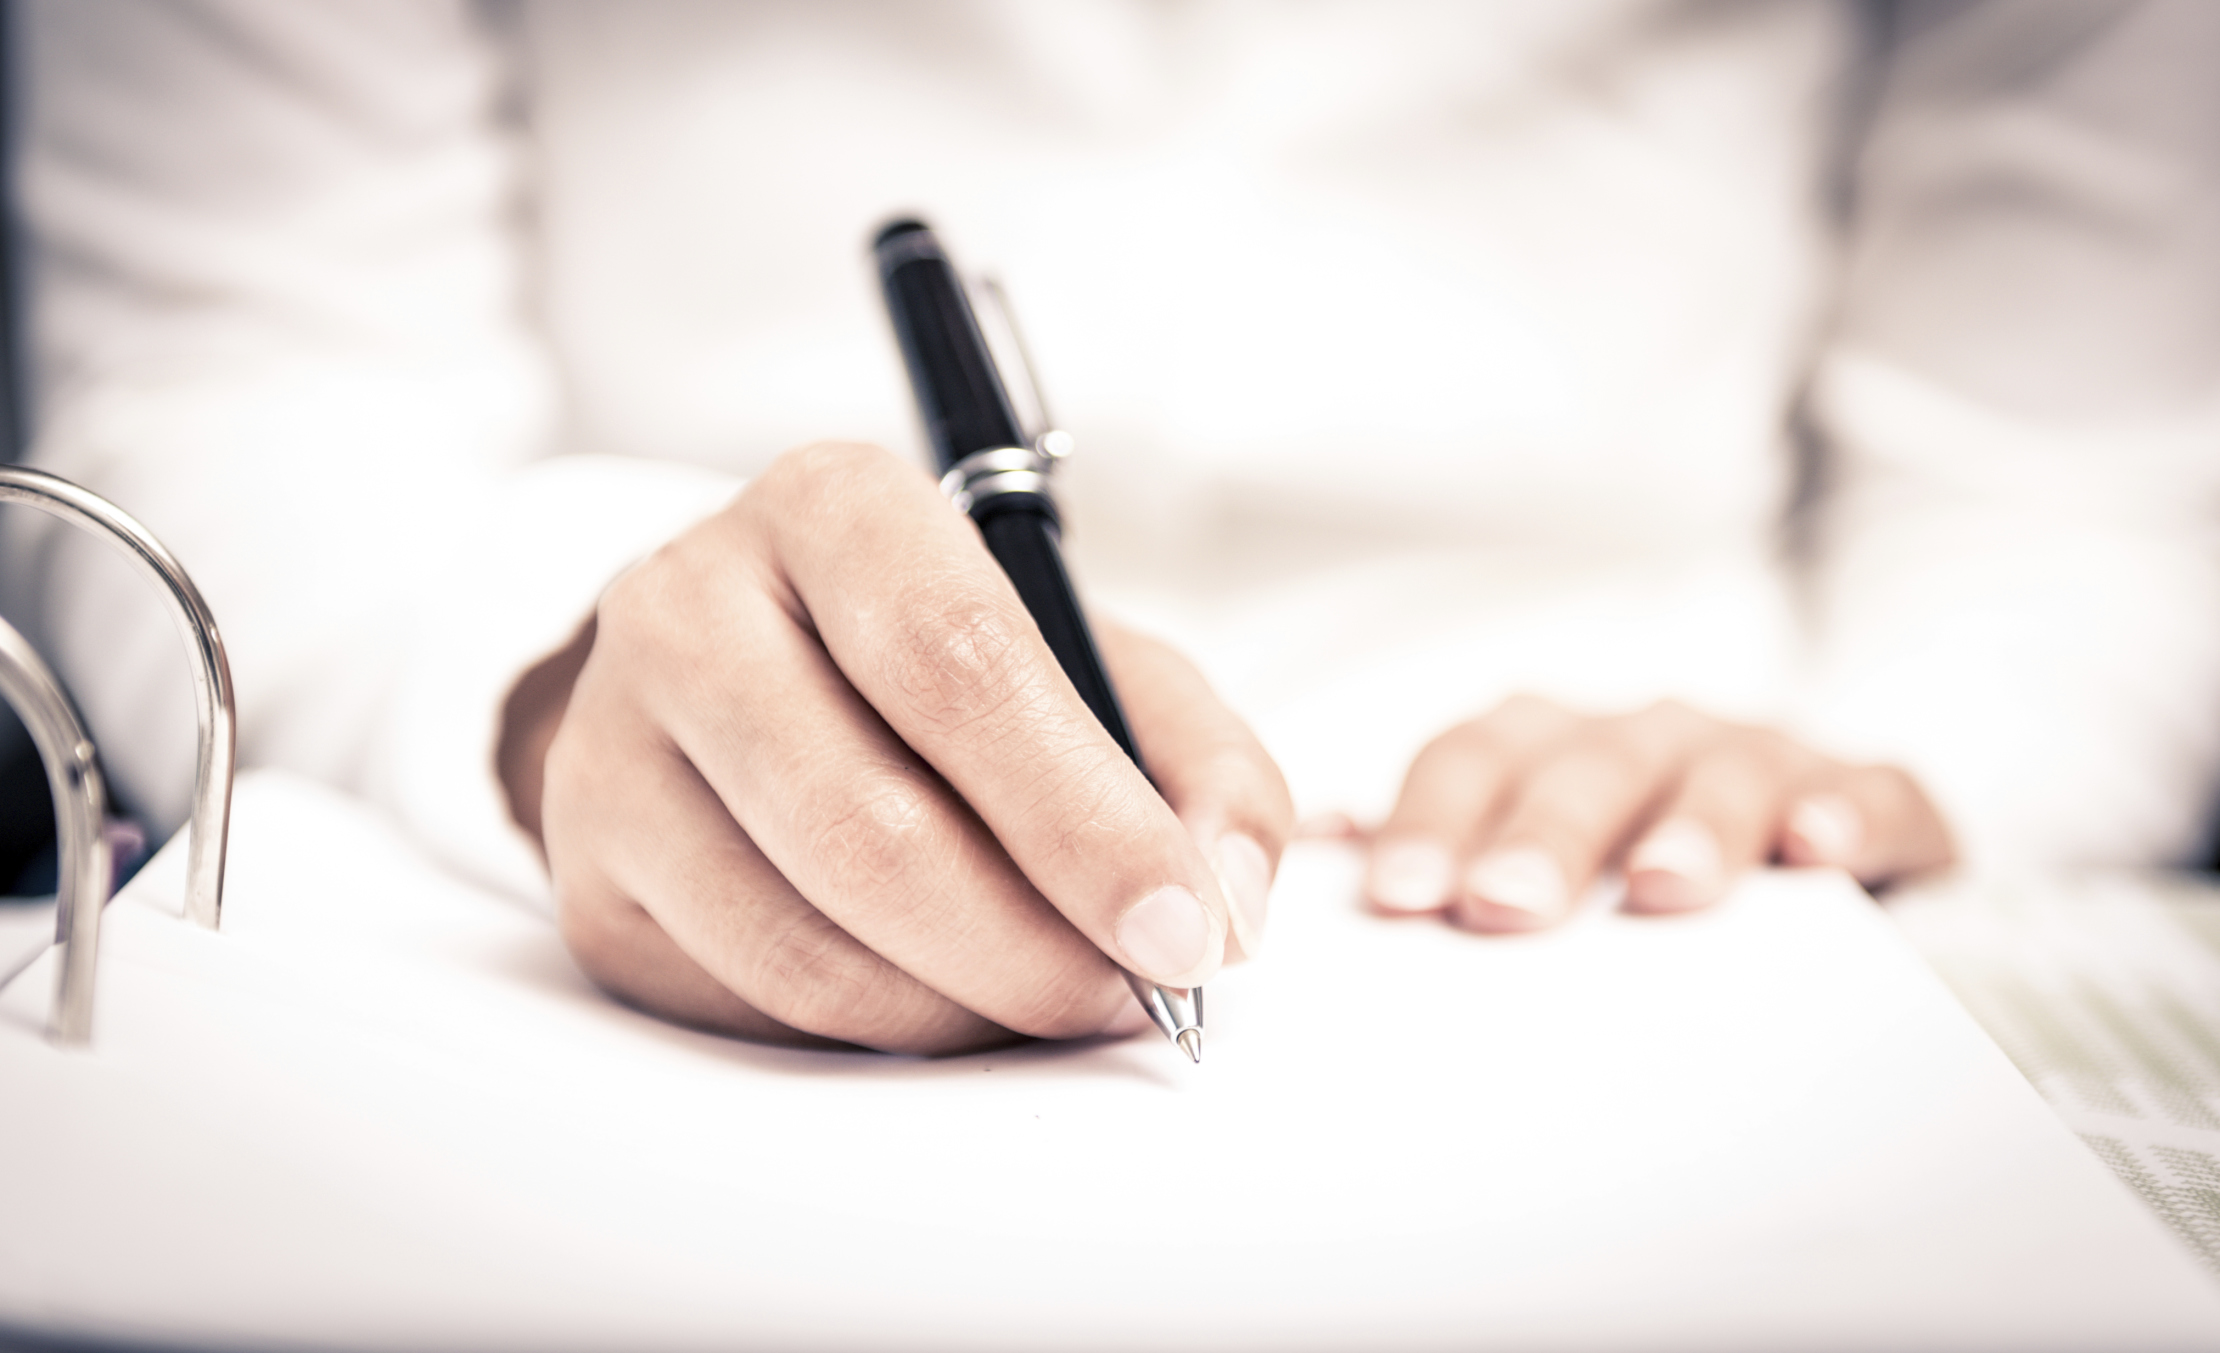 how to write a complaint letter about a co worker However, your colleague has said that she is not able to be in the same room   without fear that it will end up in writing or be held against them.